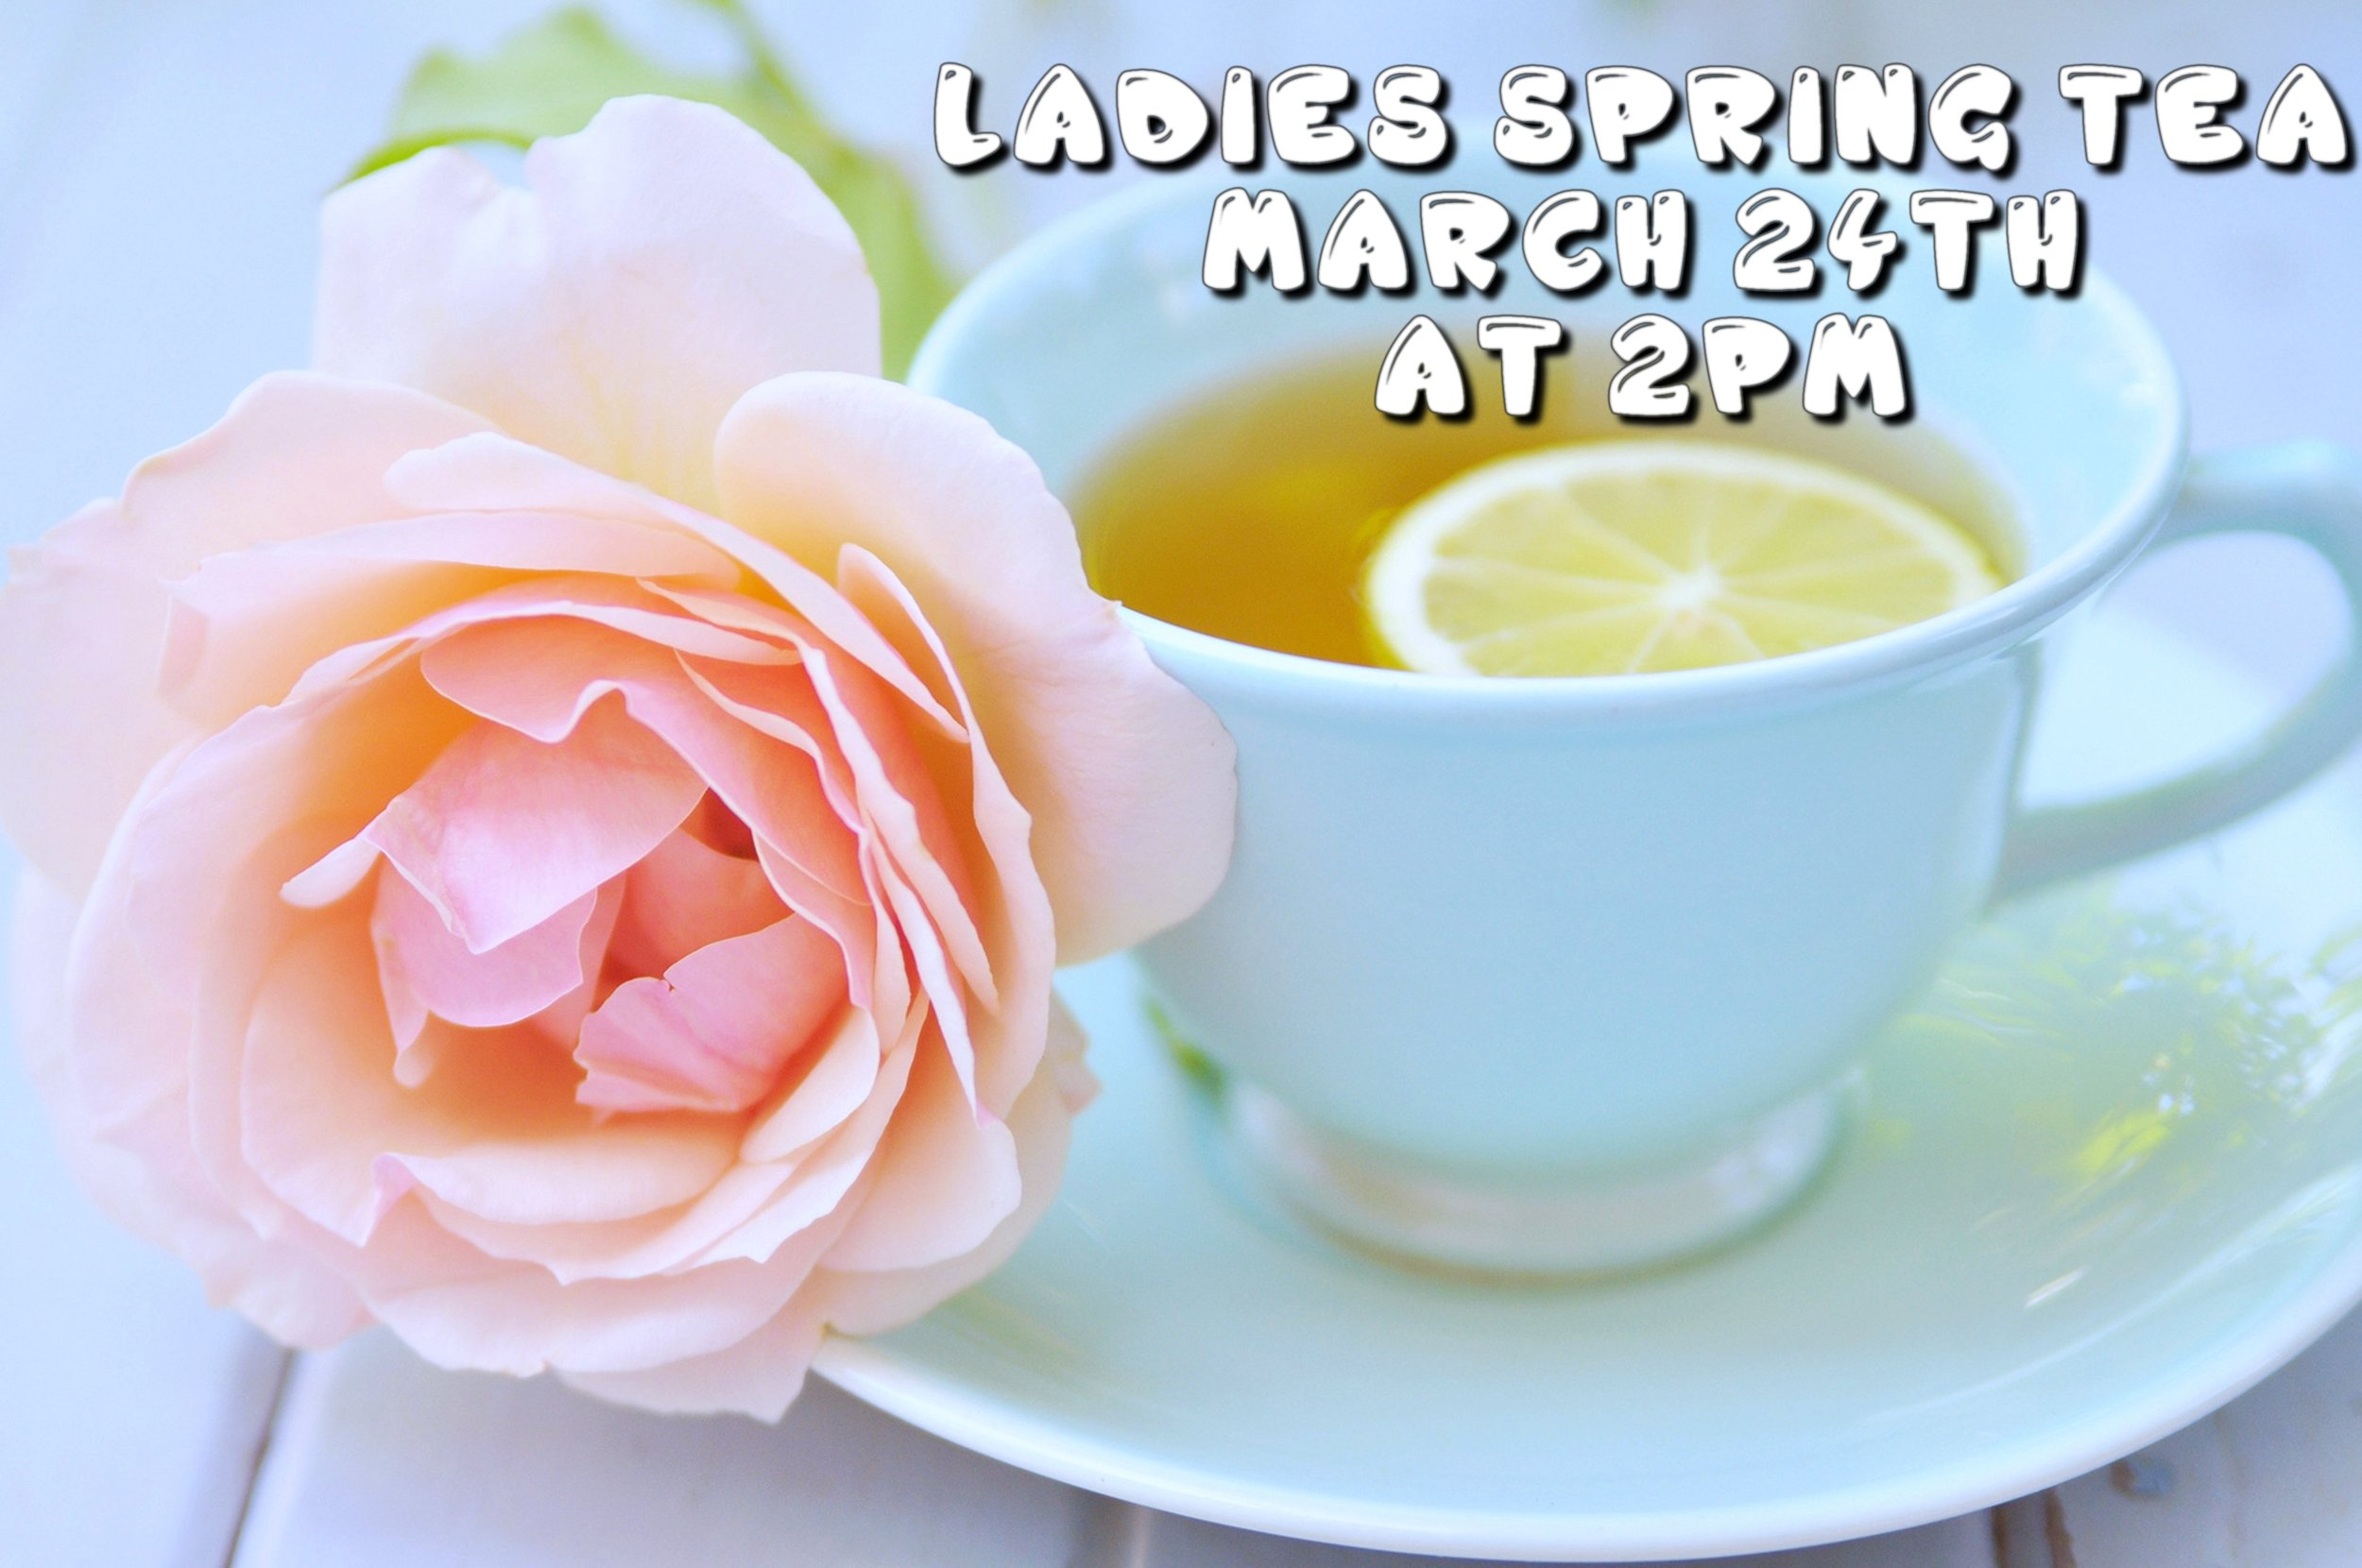 Ladies Spring Tea - The ladies of Grace Pointe will be having a spring tea on March 24th from 2-4pm. Come out and enjoy a lovely time with ladies in fellowship over some tea and hear a powerful message from Mrs. Kristen Miles. If you would like to host a table or to attend please fill out the form below!